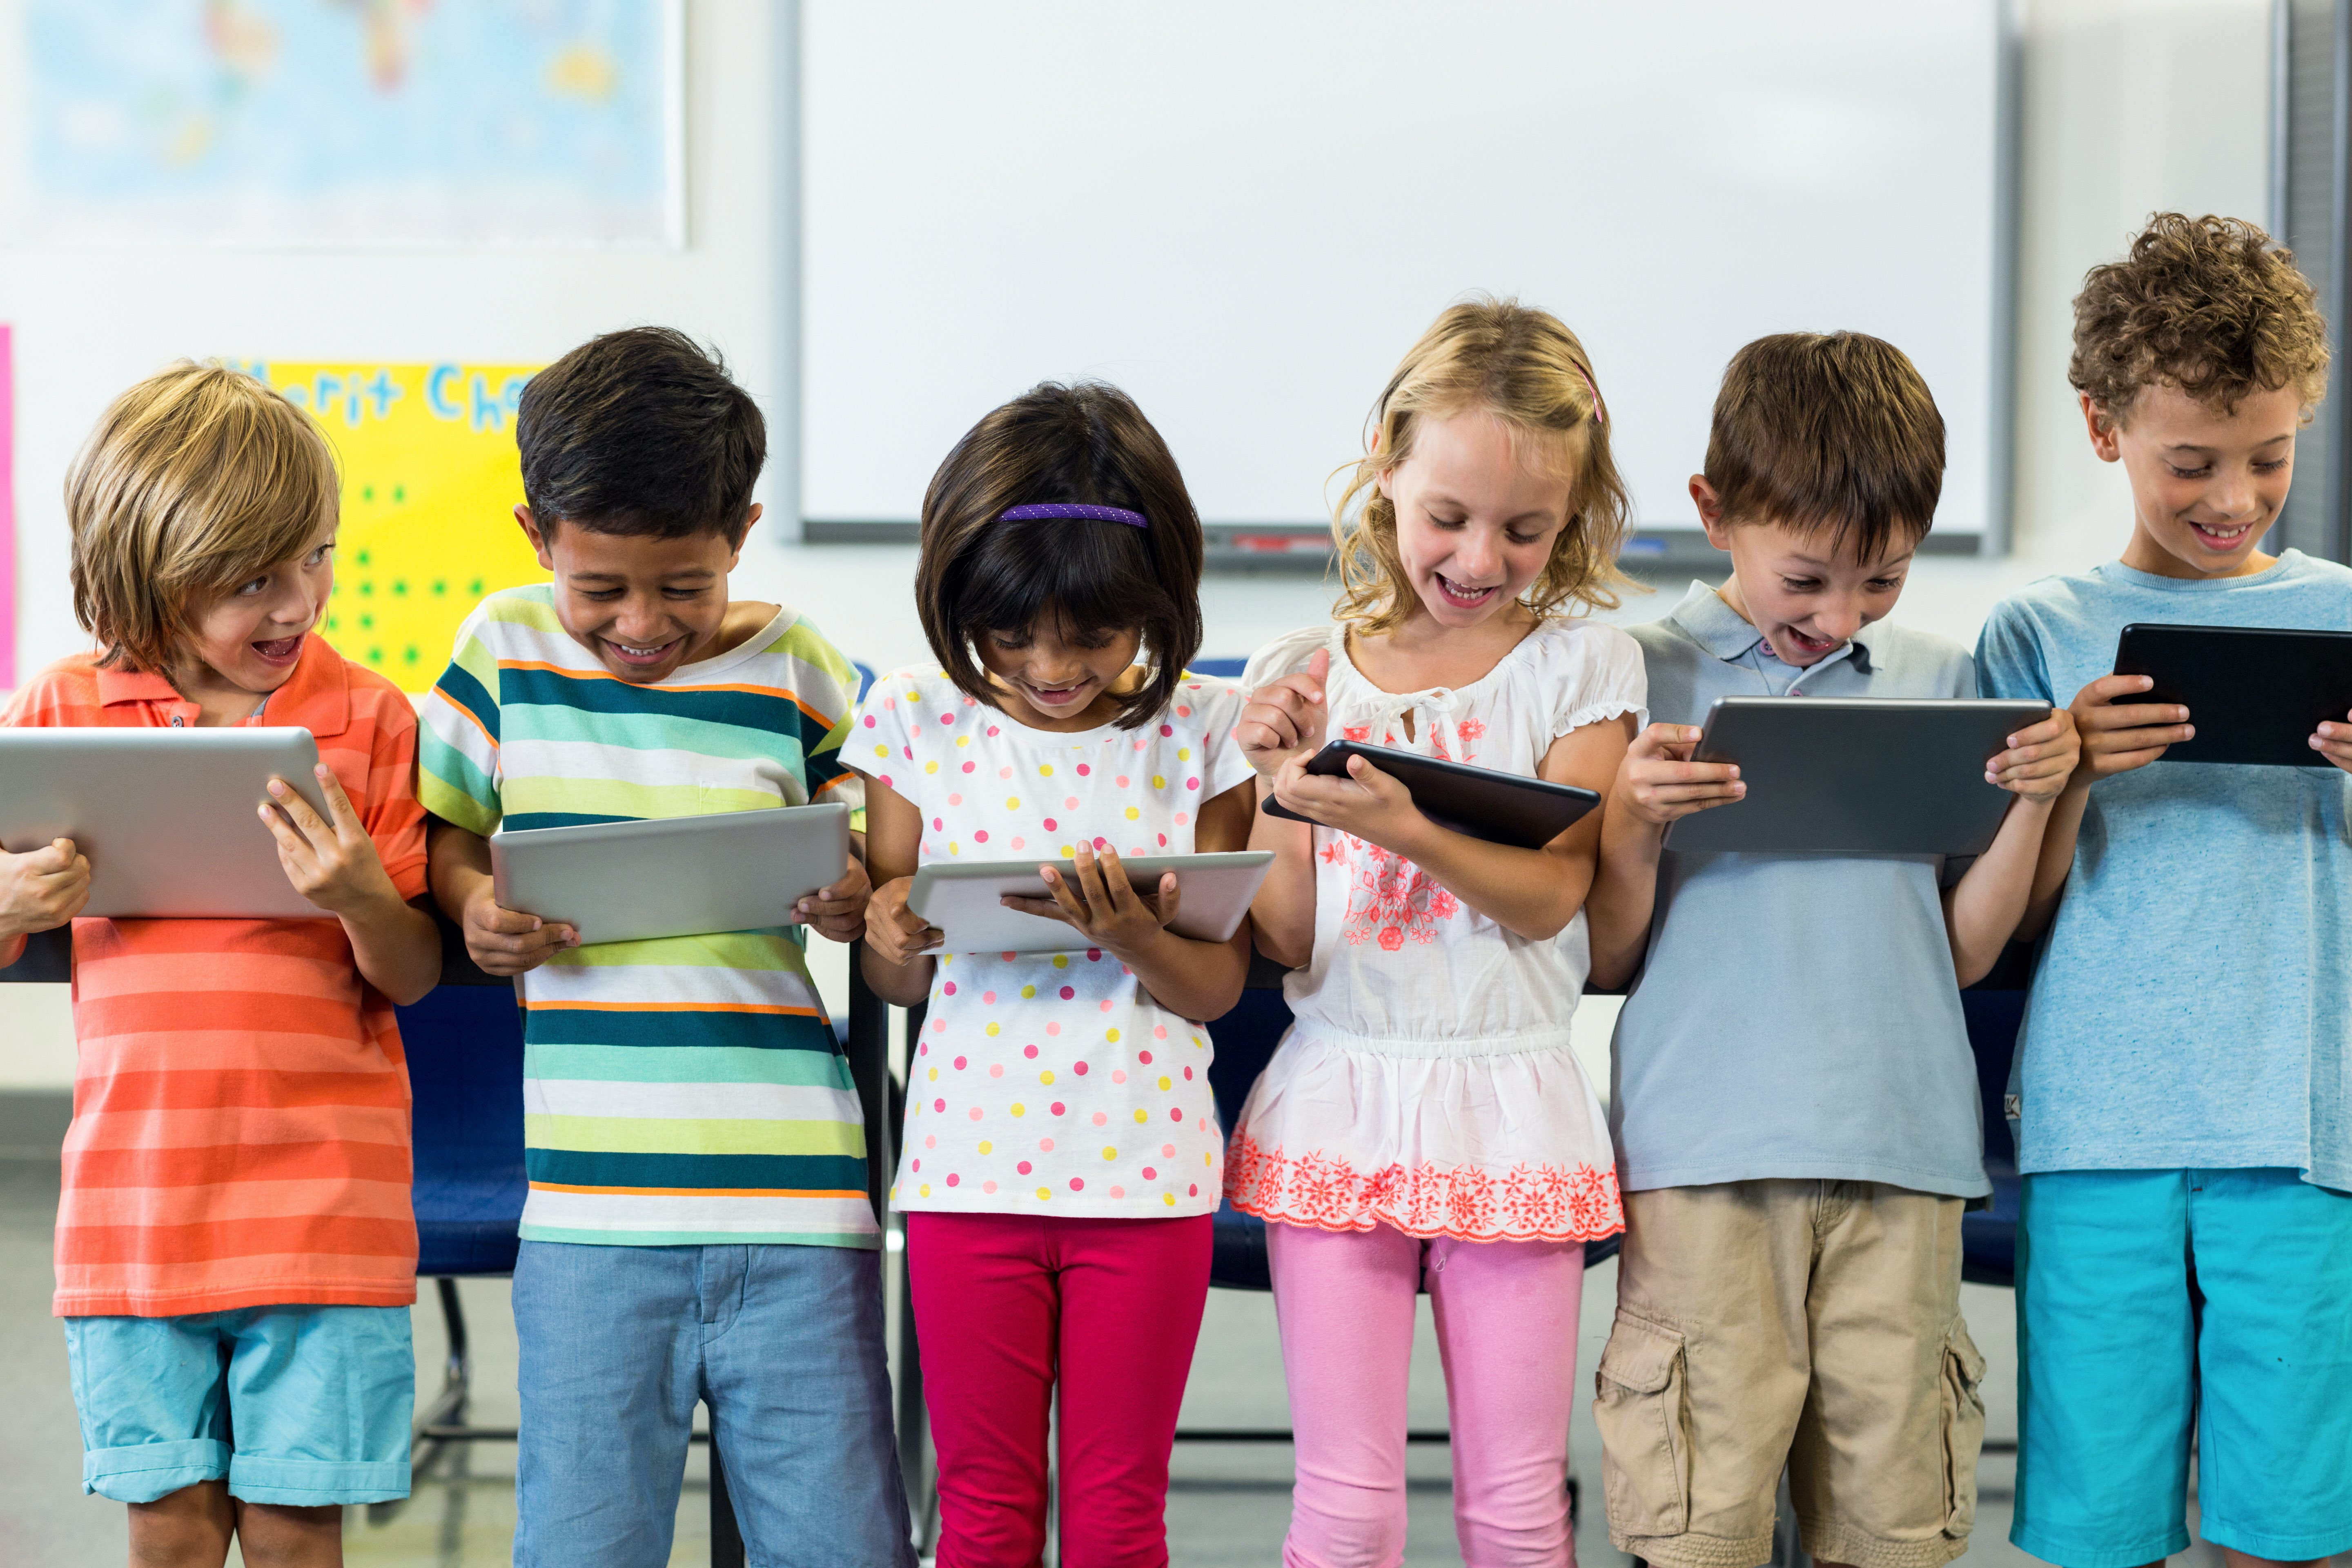 young children reading books in multi colored shirts